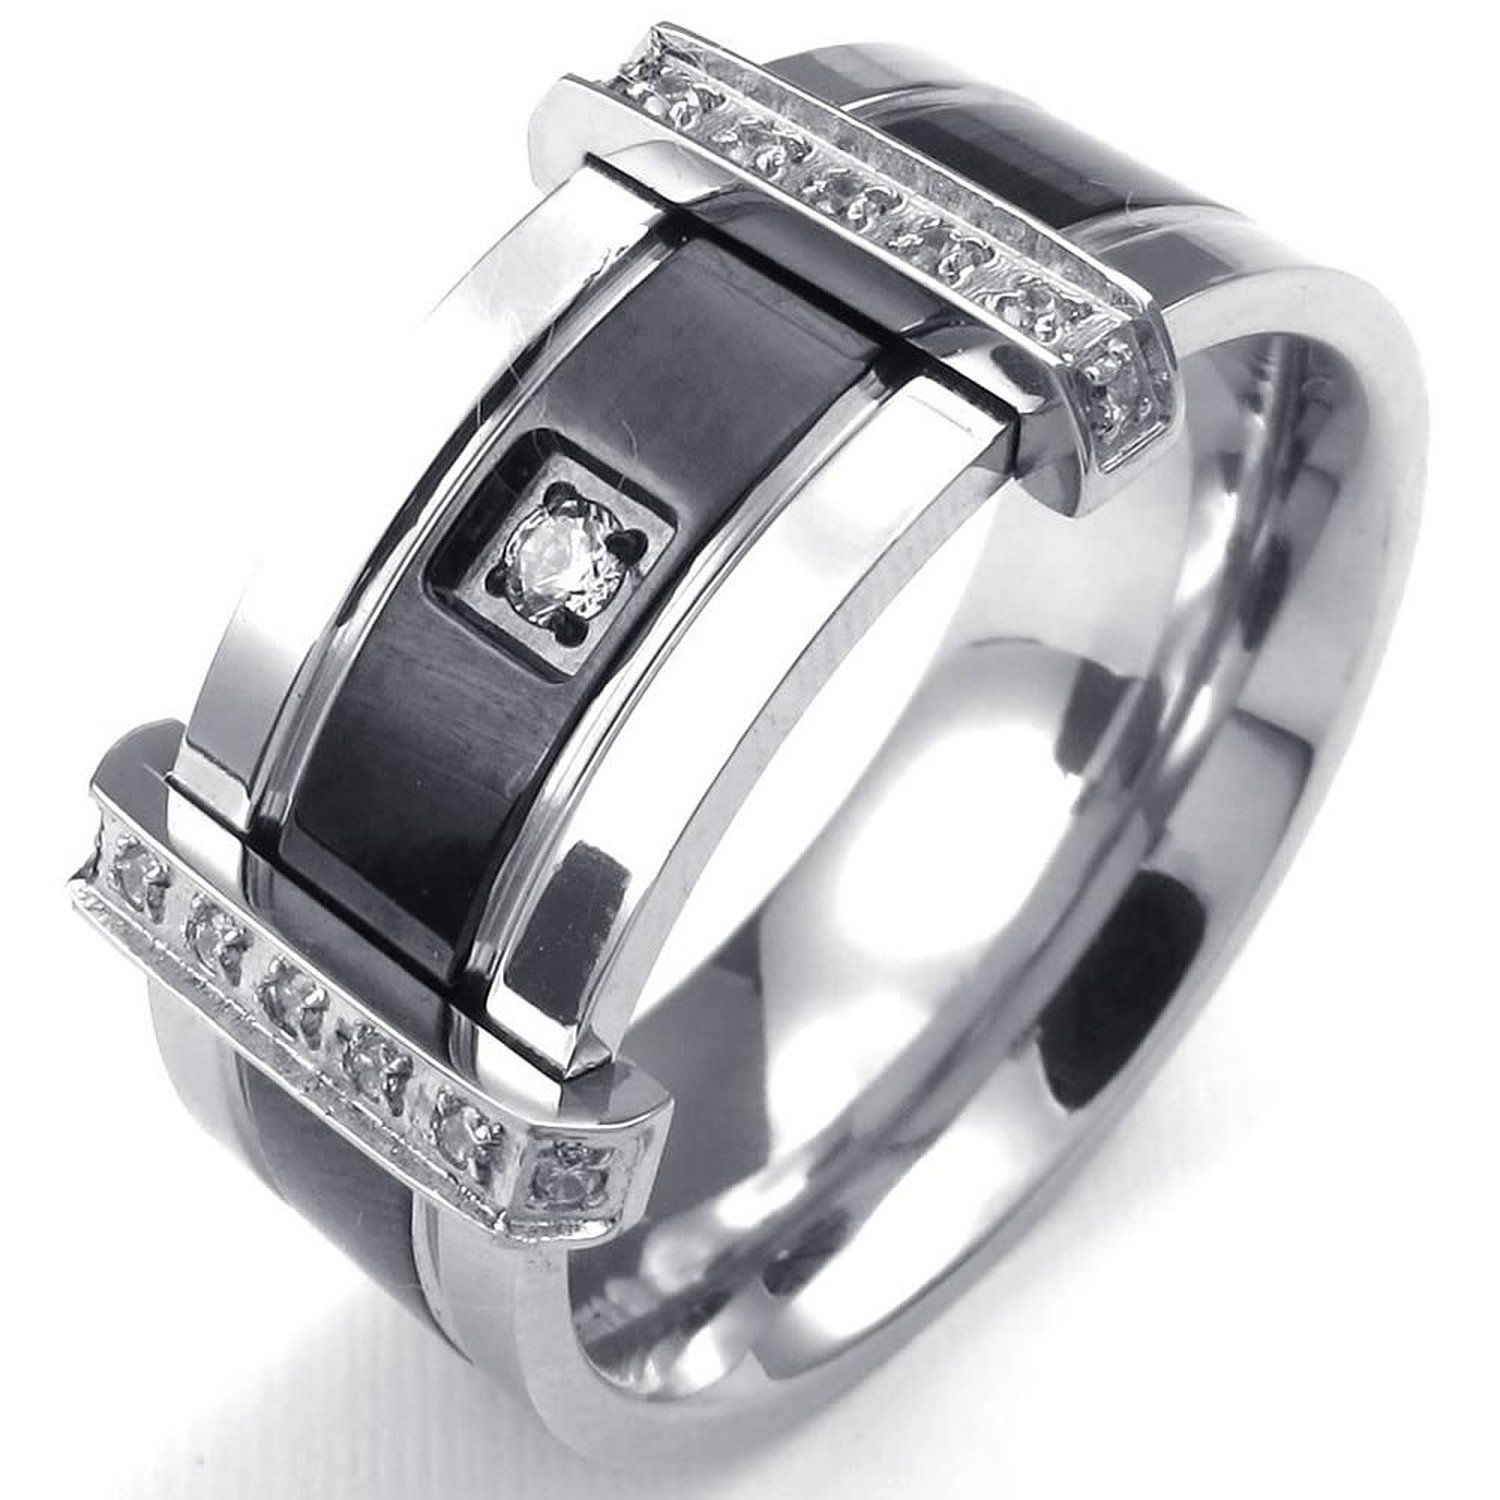 designer milgrain finish couple edges plain center a in rings ring half pt band is by jl platinum the eternity on with groove jewelove products bands mens